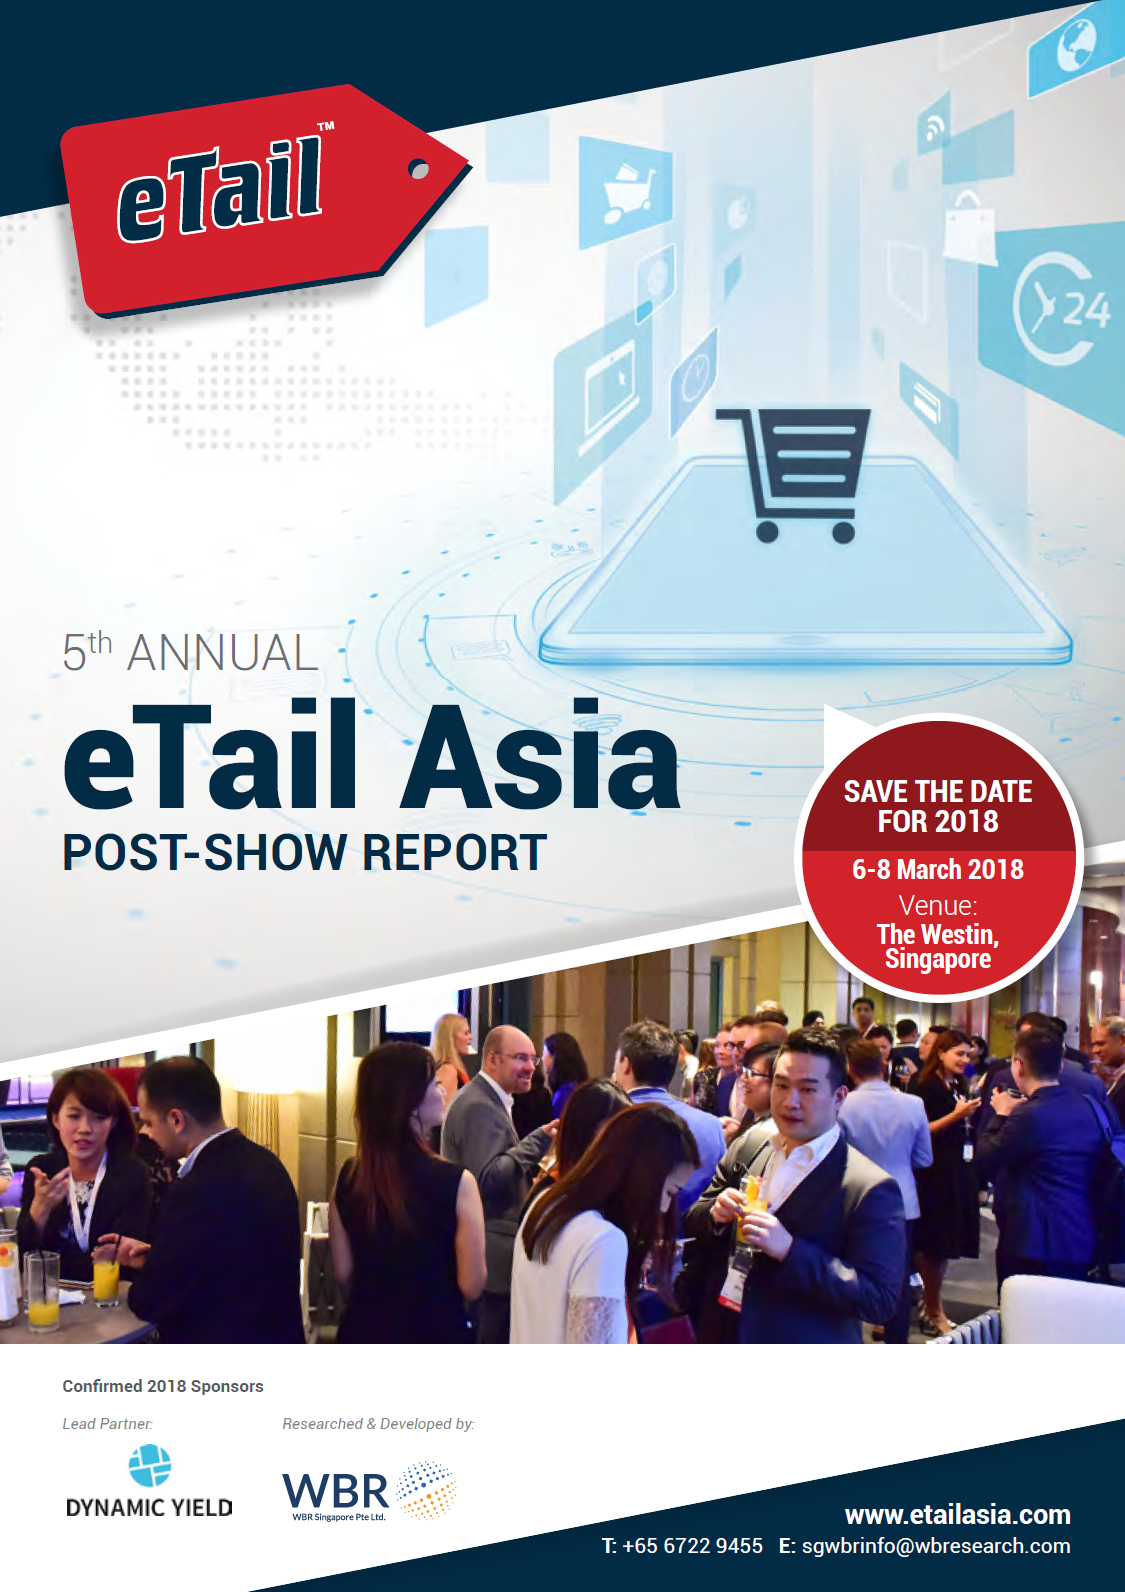 eTail Asia 2017 Post Show Report